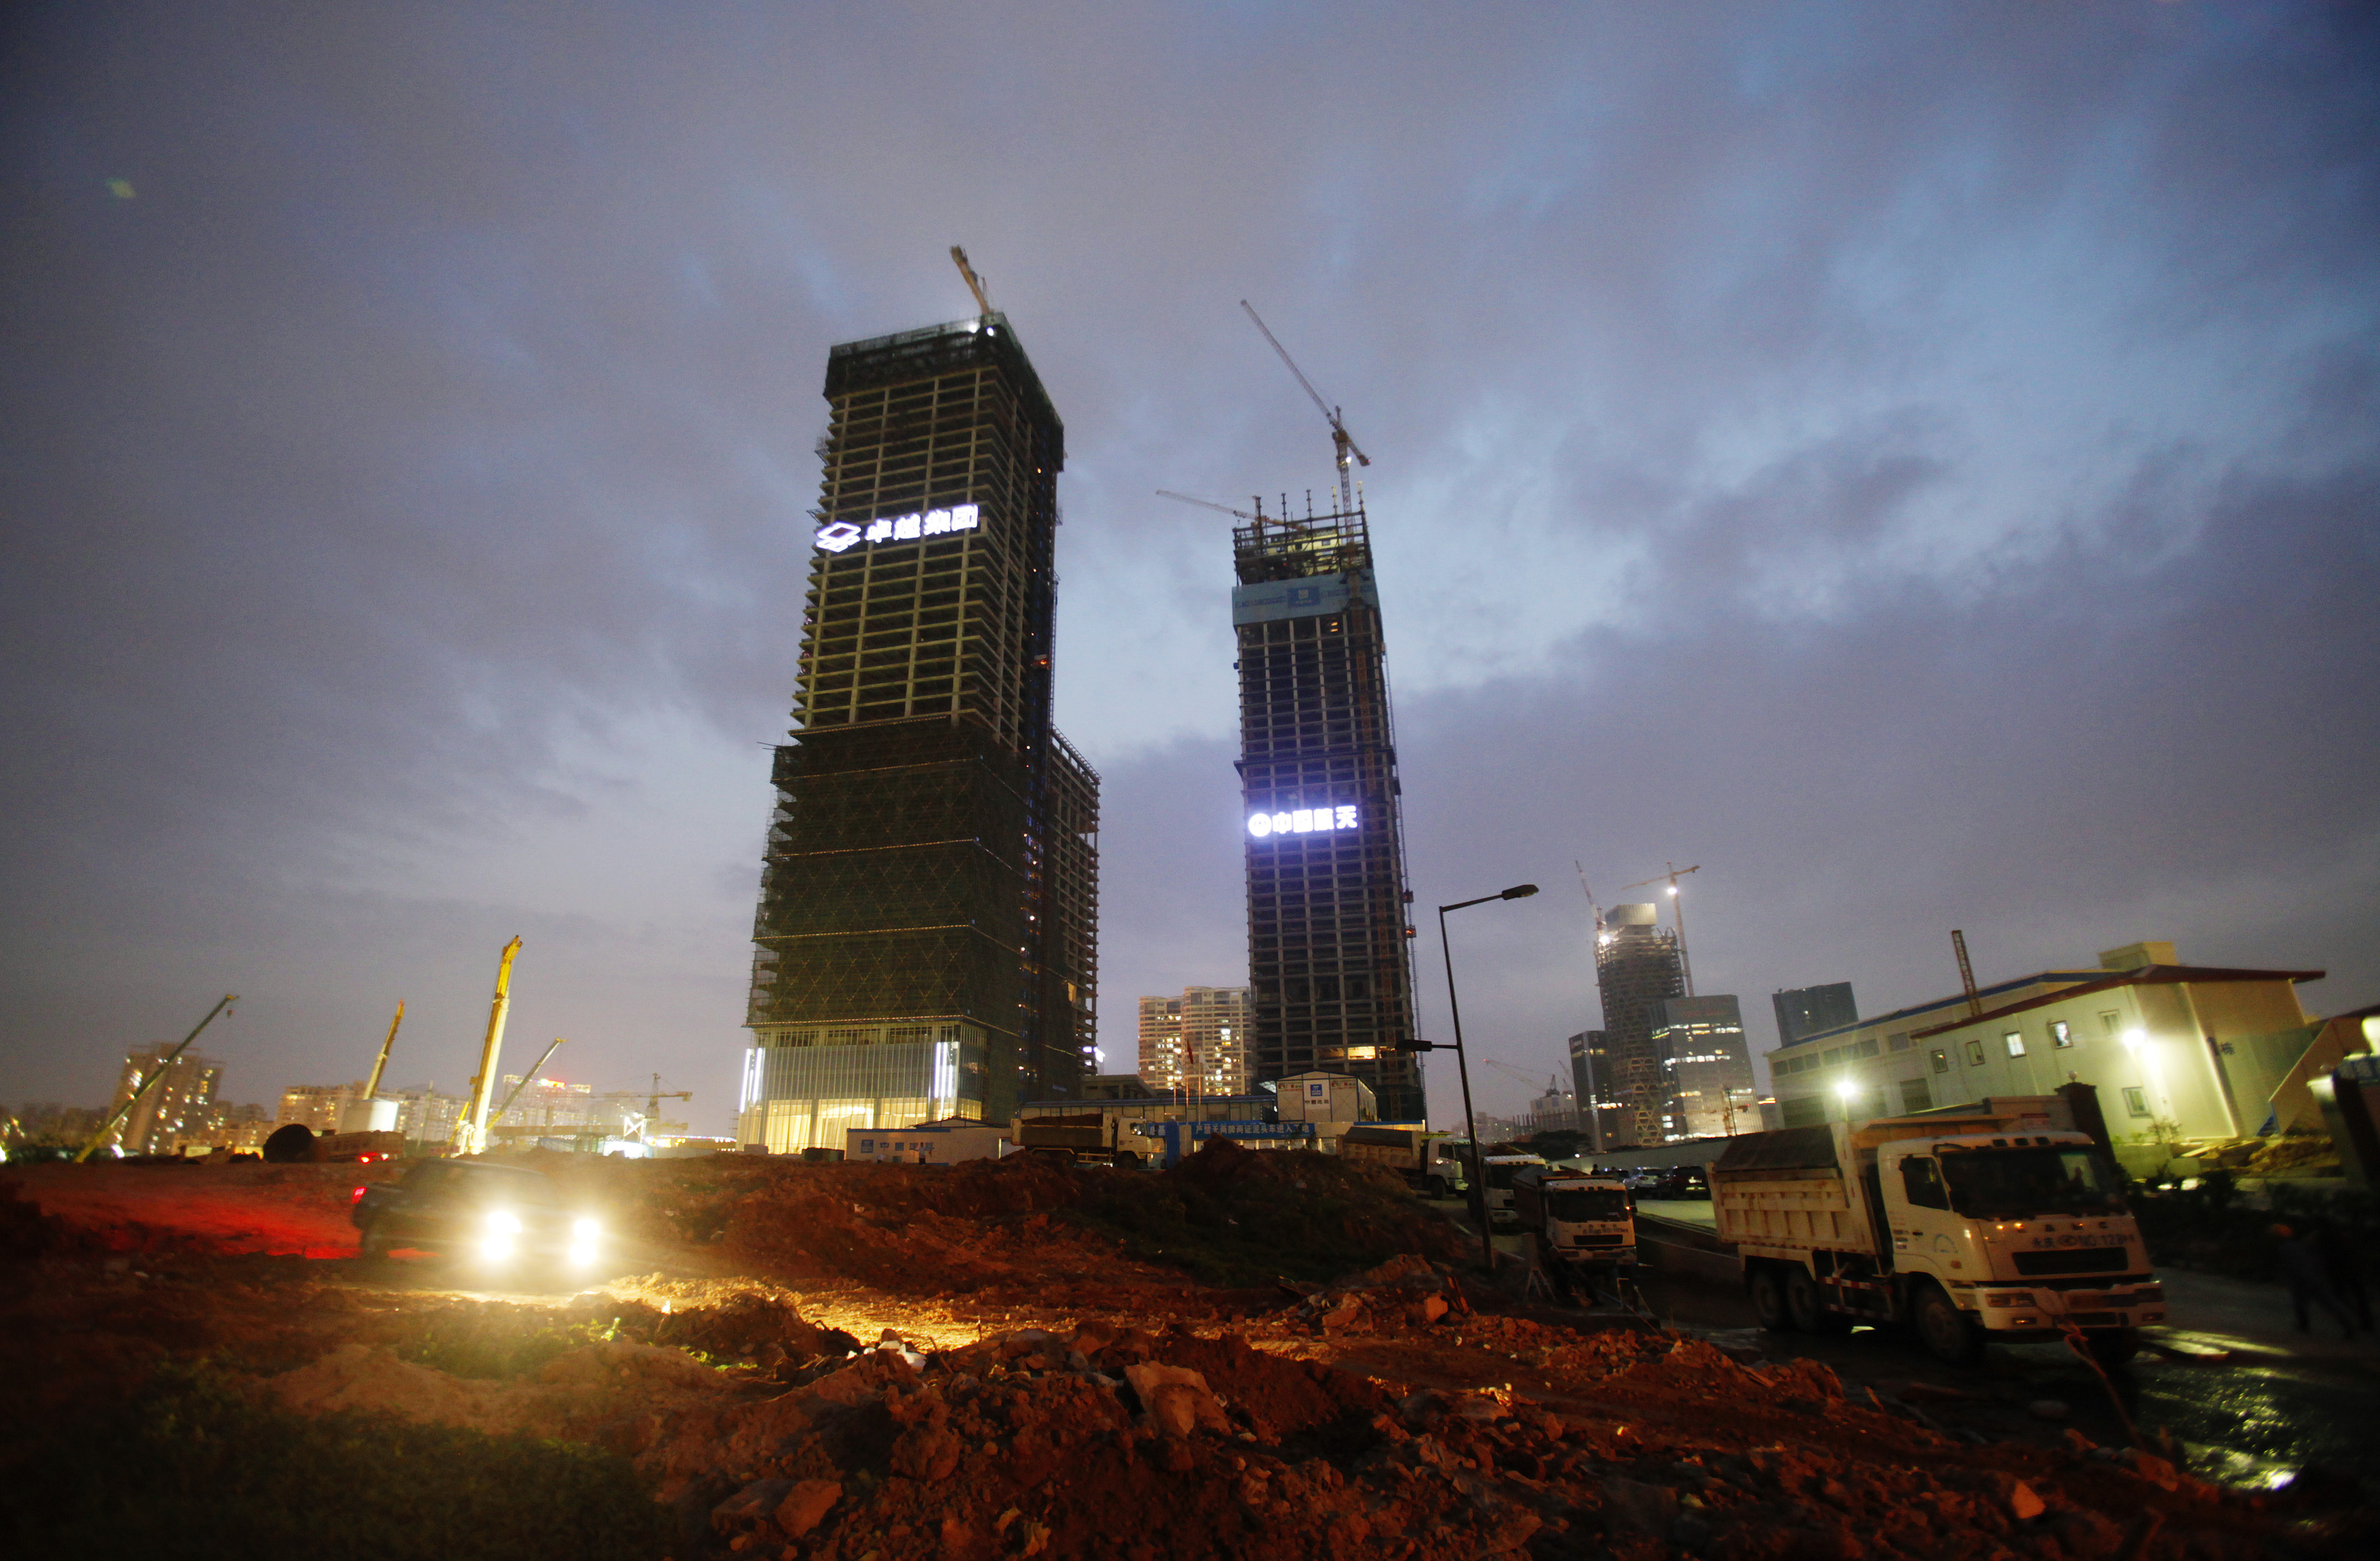 Buildings in construction are seen at Excellence Real Estate Group's construction site in Qianhai district of Shenzhen